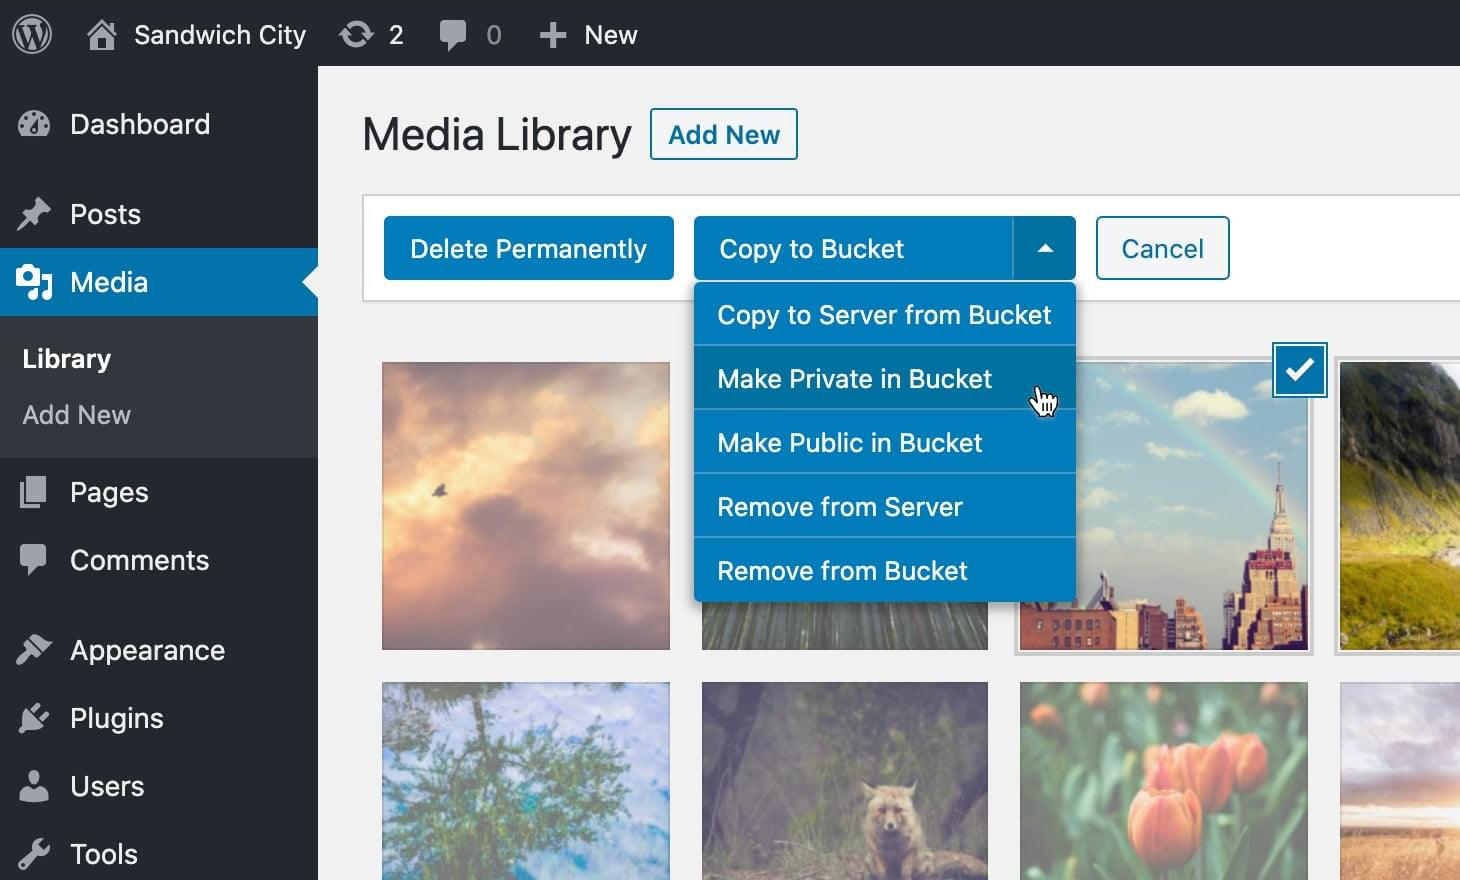 Control S3 and DigitalOcean Spaces files from the media library